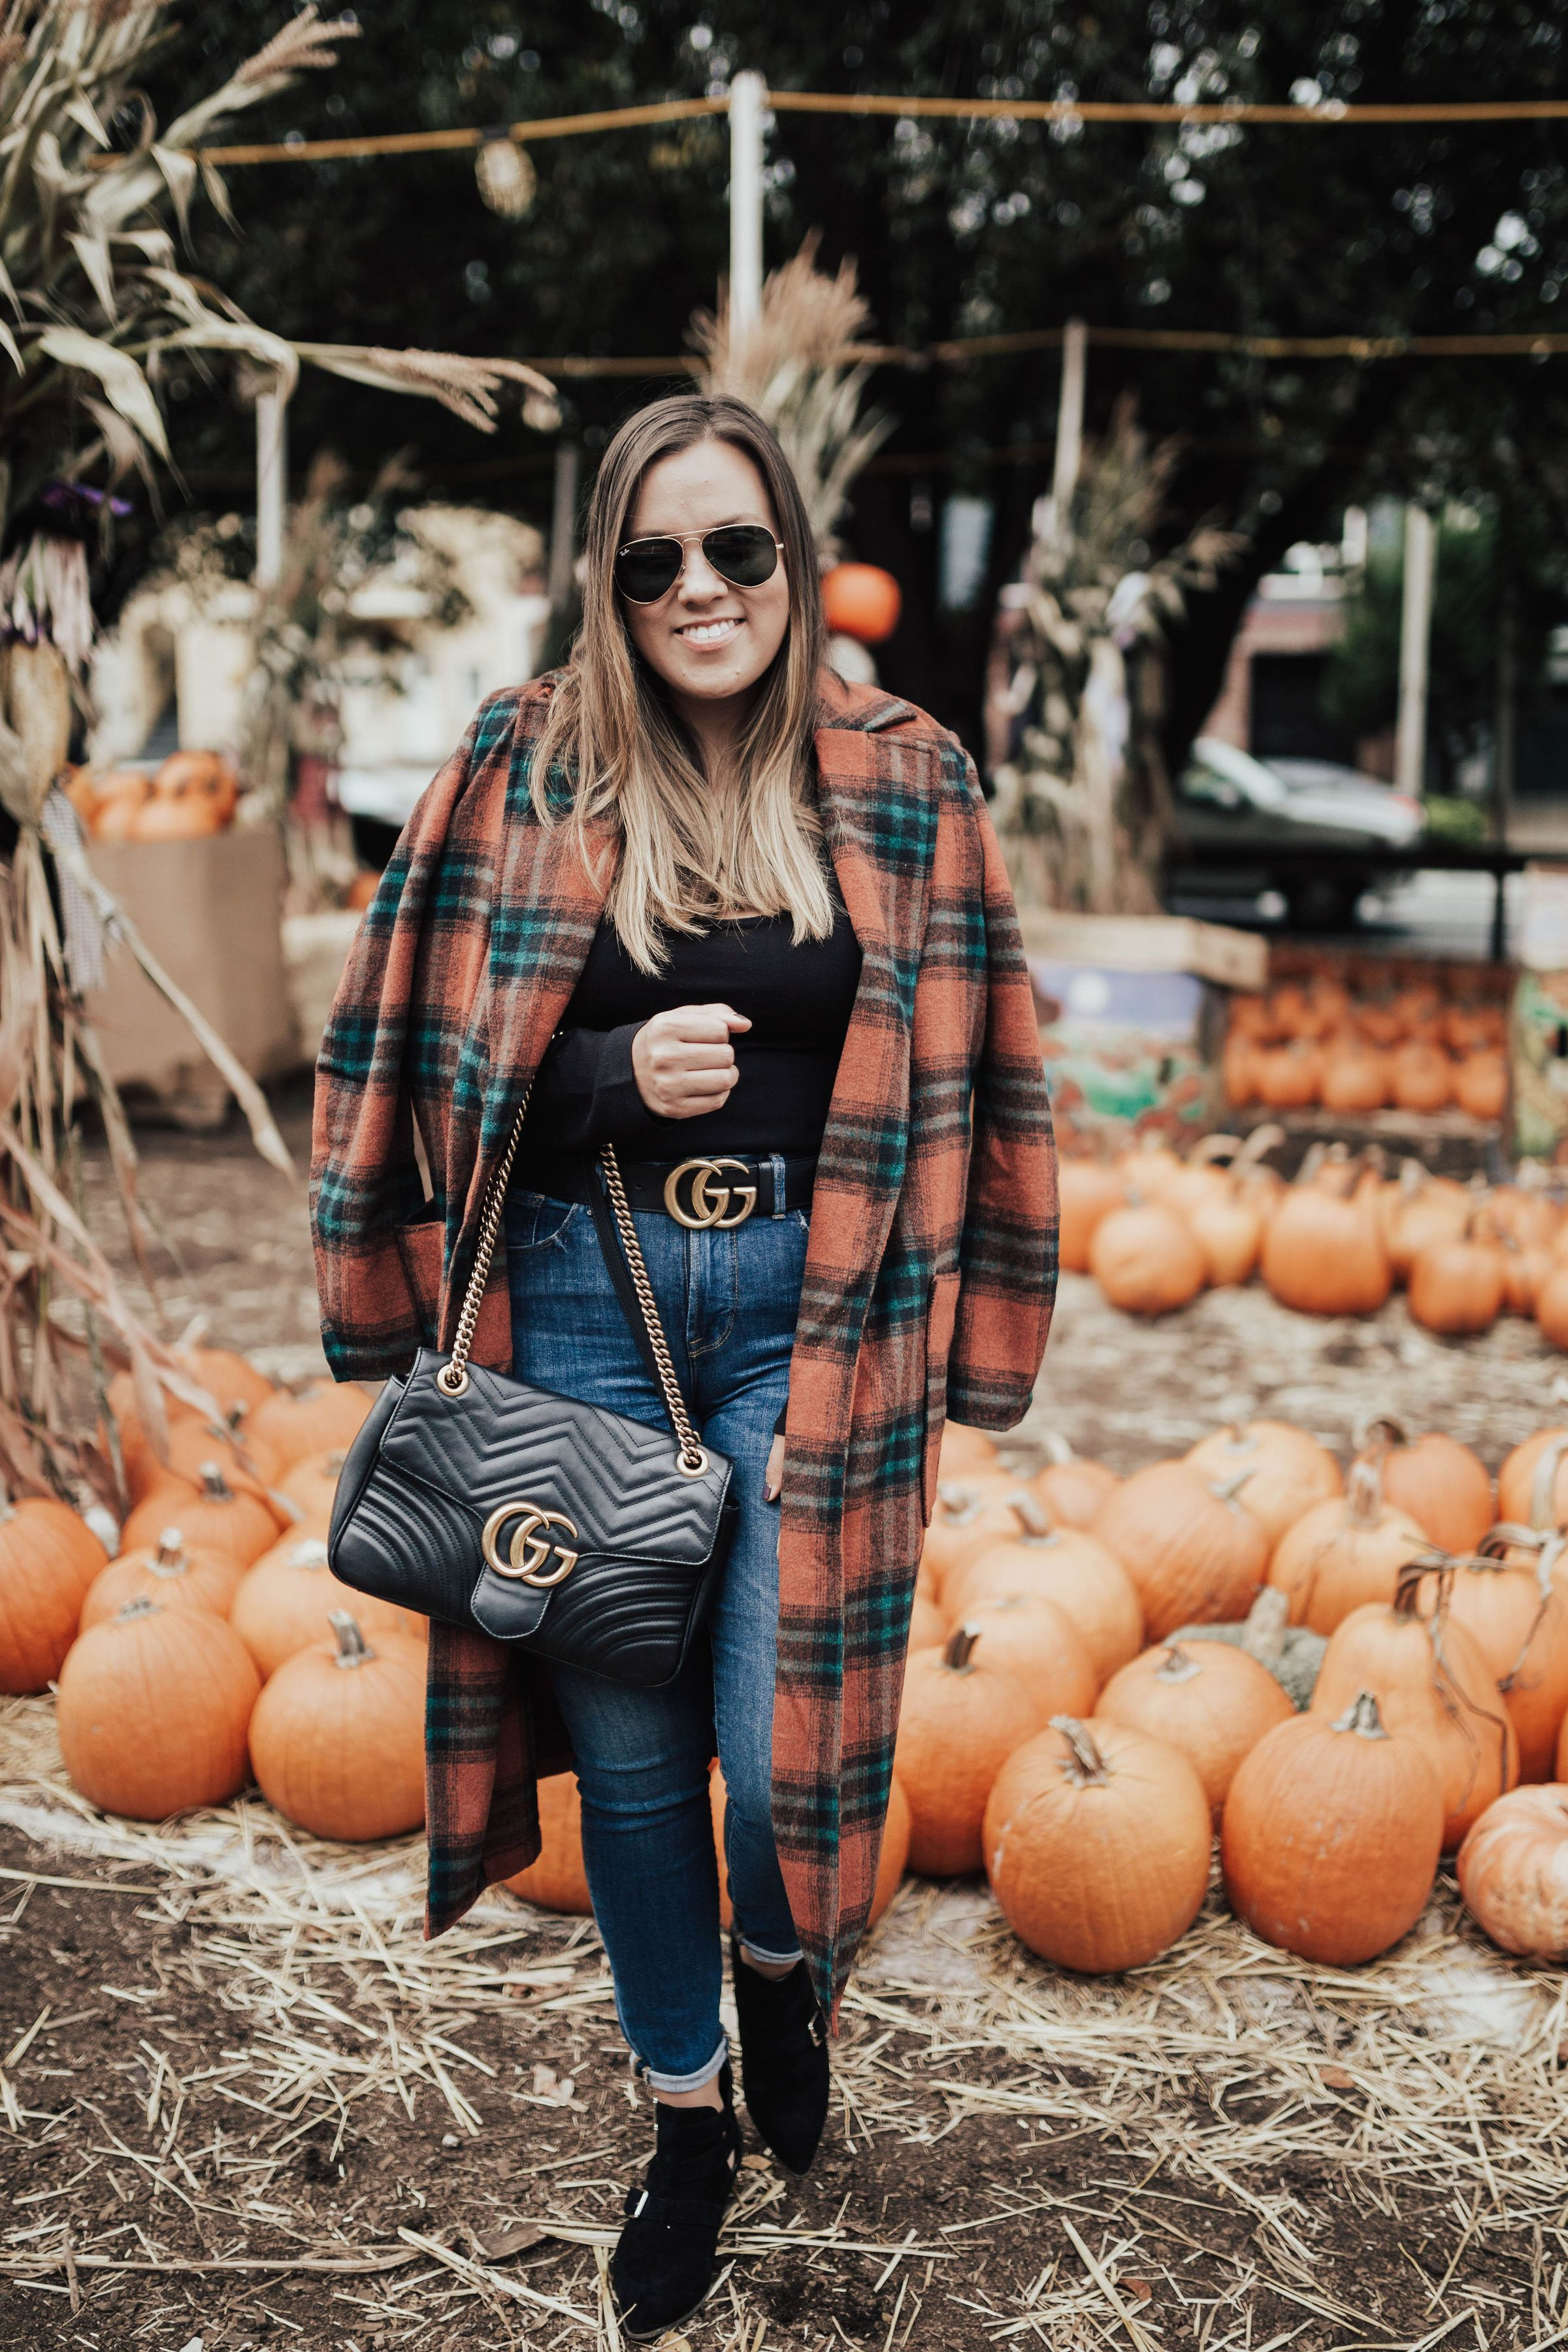 Pumpkin Patch Outfit at Clancy's - Two Peas in a Prada #pumpkinpatchoutfitwomen Pumpkin Patch Outfit at Clancy's - Two Peas in a Prada #pumpkinpatchoutfit Pumpkin Patch Outfit at Clancy's - Two Peas in a Prada #pumpkinpatchoutfitwomen Pumpkin Patch Outfit at Clancy's - Two Peas in a Prada #pumpkinpatchoutfitwomen Pumpkin Patch Outfit at Clancy's - Two Peas in a Prada #pumpkinpatchoutfitwomen Pumpkin Patch Outfit at Clancy's - Two Peas in a Prada #pumpkinpatchoutfit Pumpkin Patch Outfit at Clancy #pumpkinpatchoutfitwomen